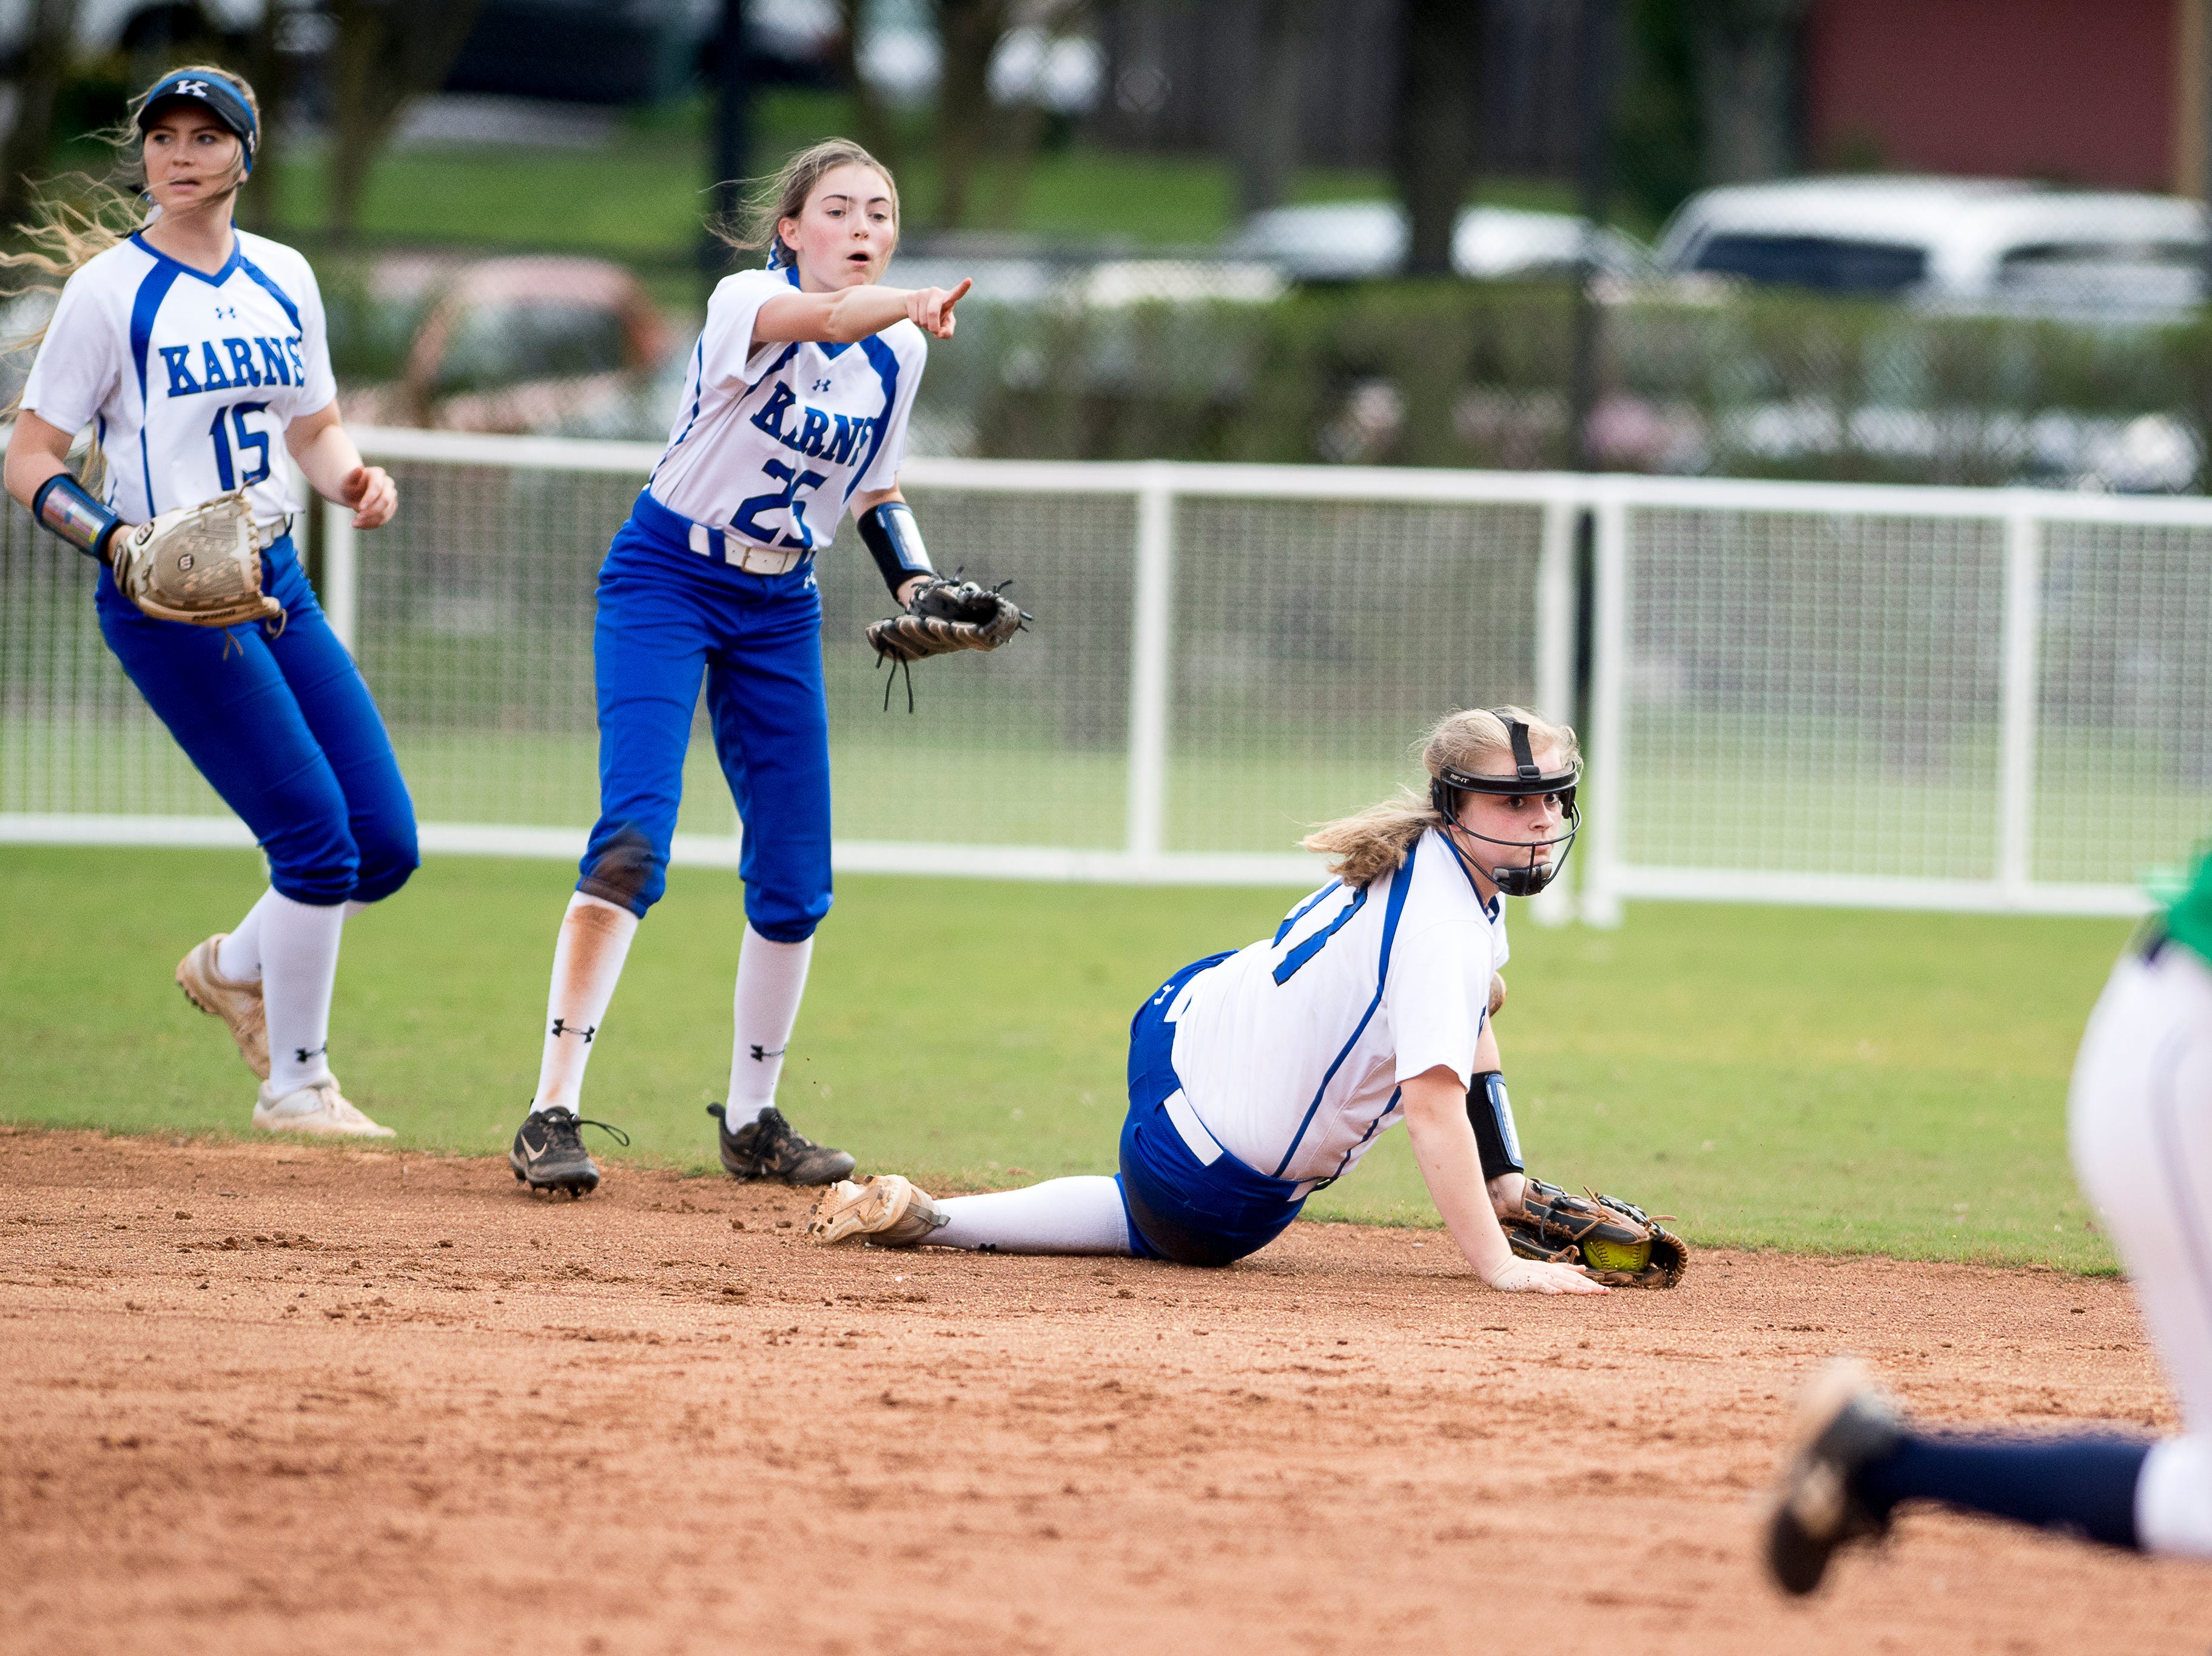 Karns' Elizabeth Breeden (25) points Kelcie Jade Grubb (17) to home plate during a softball game between Catholic and Karns at Caswell Park in Knoxville, Tennessee on Friday, April 12, 2019.